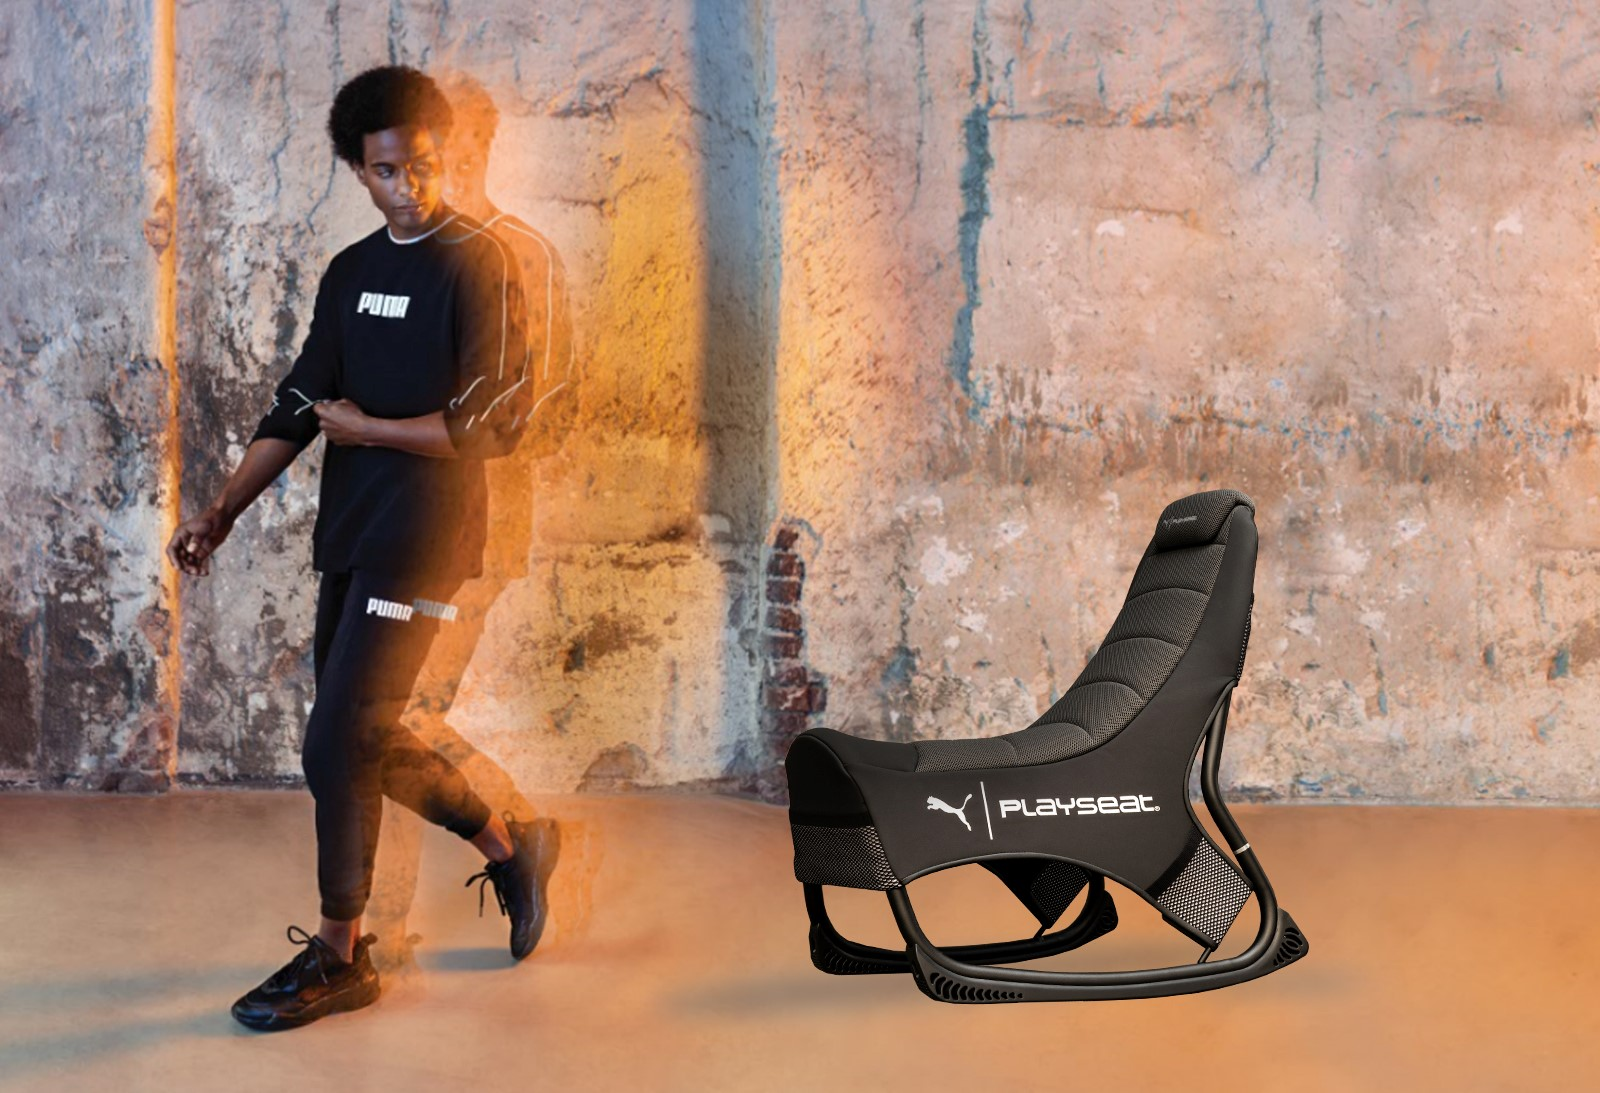 Puma teams with Playseat to get gamers rockin'